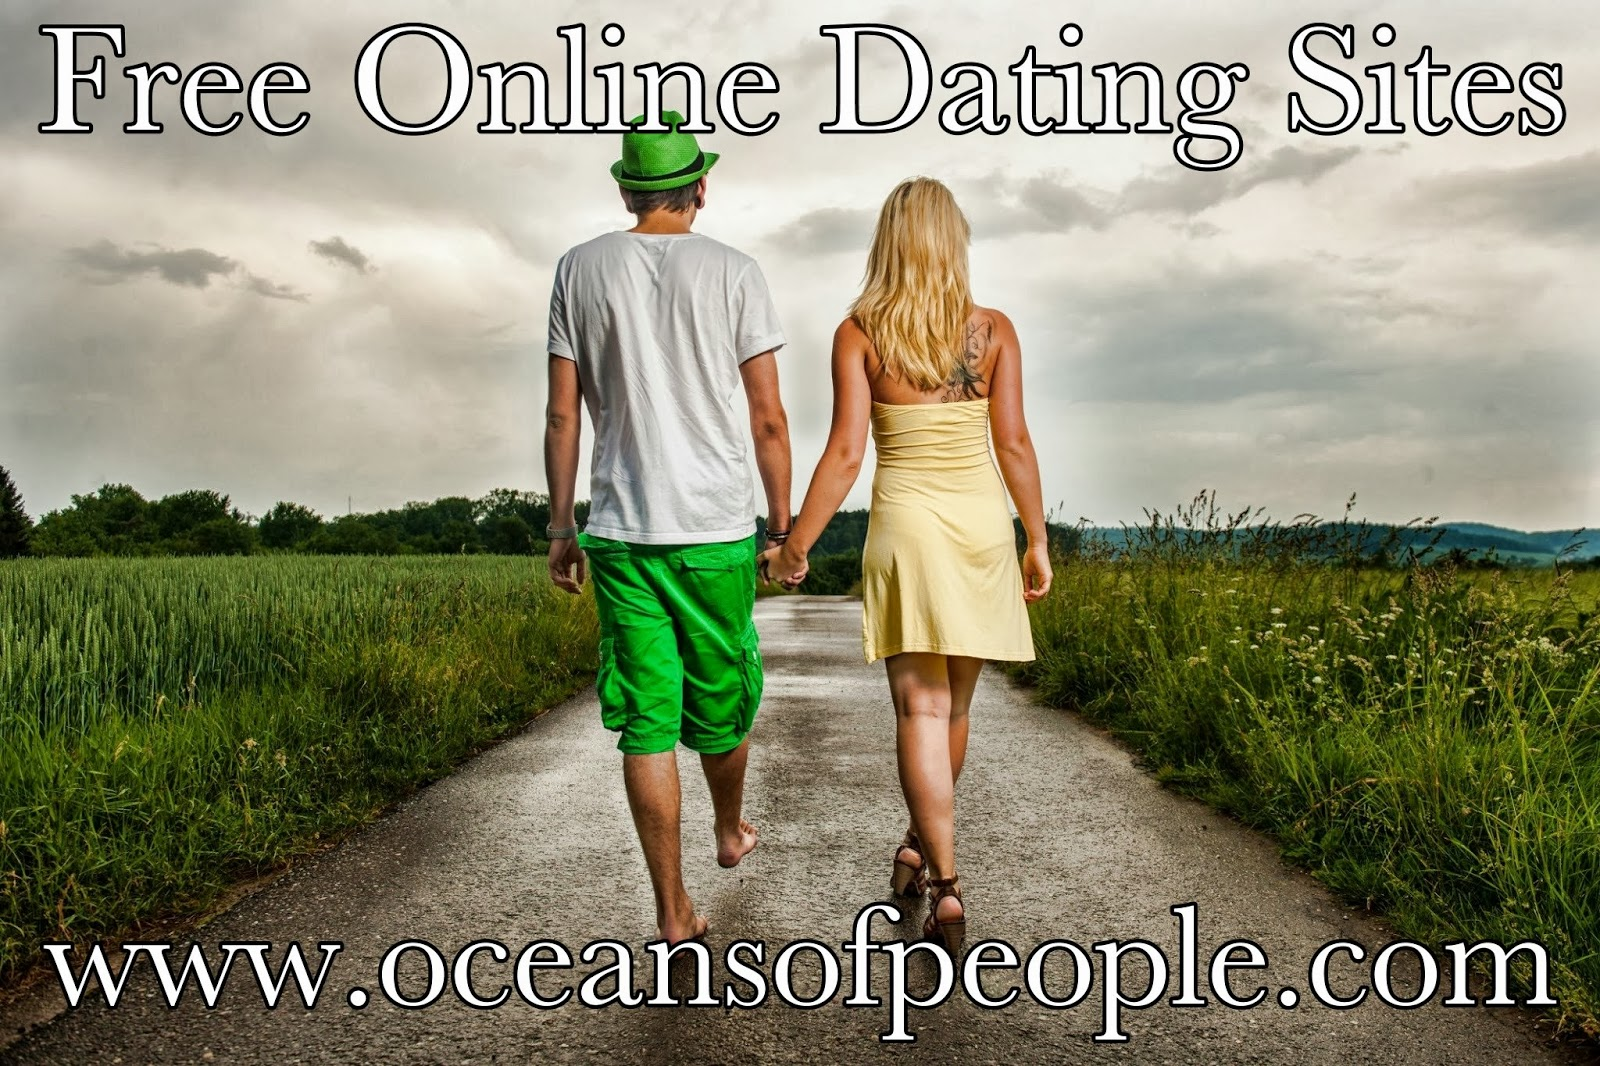 Online dating sites that work free